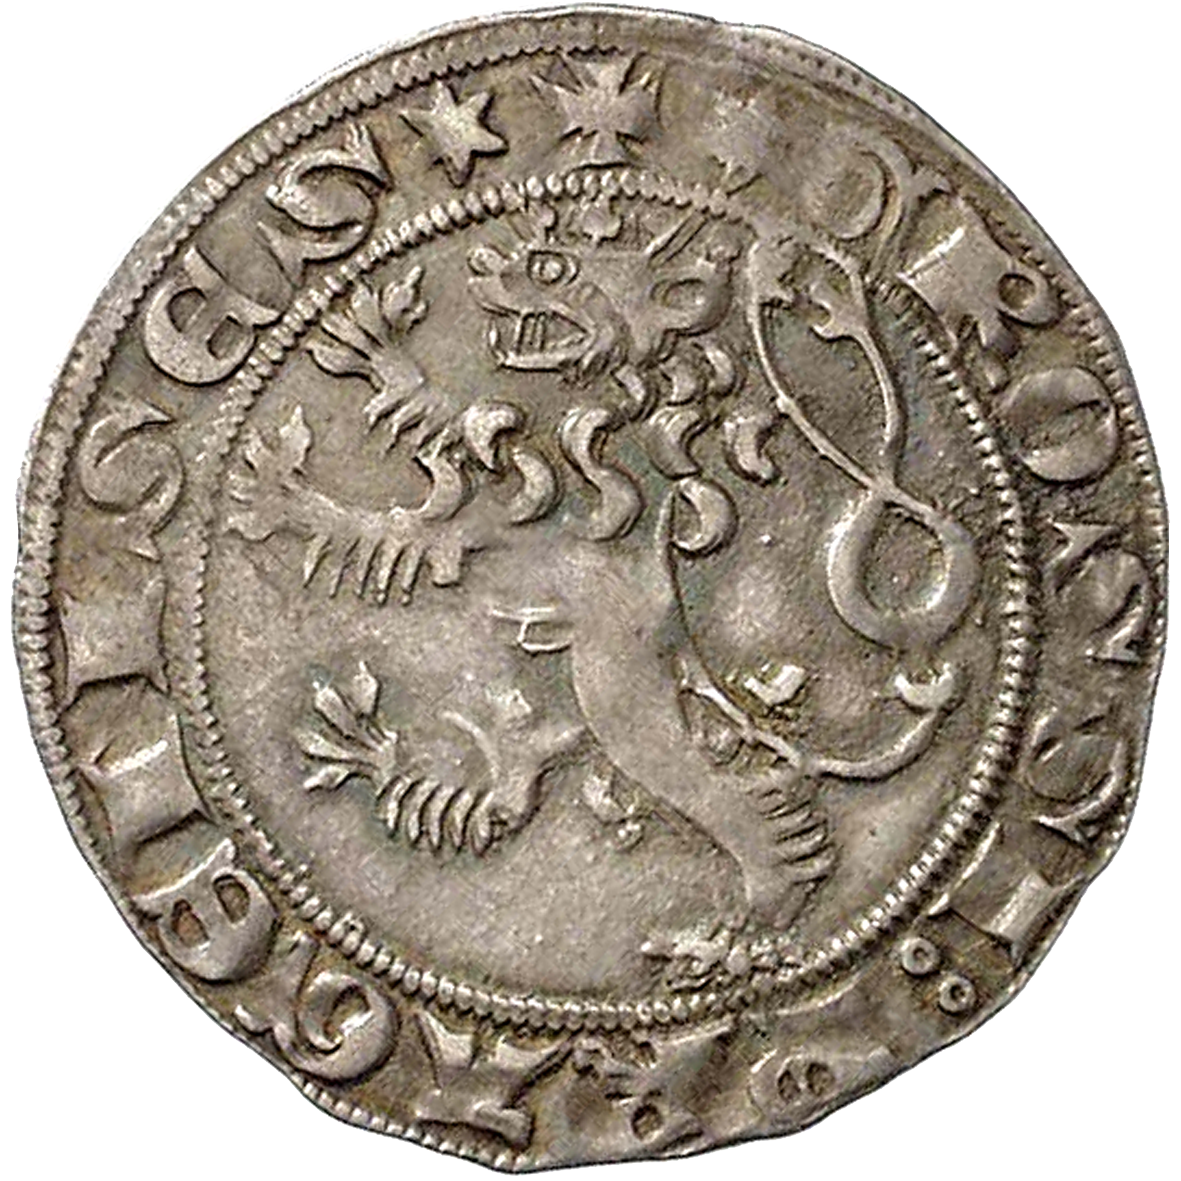 Holy Roman Empire, Kingdom of Boehmia, Wenceslaus II, Groschen of Prague (reverse)